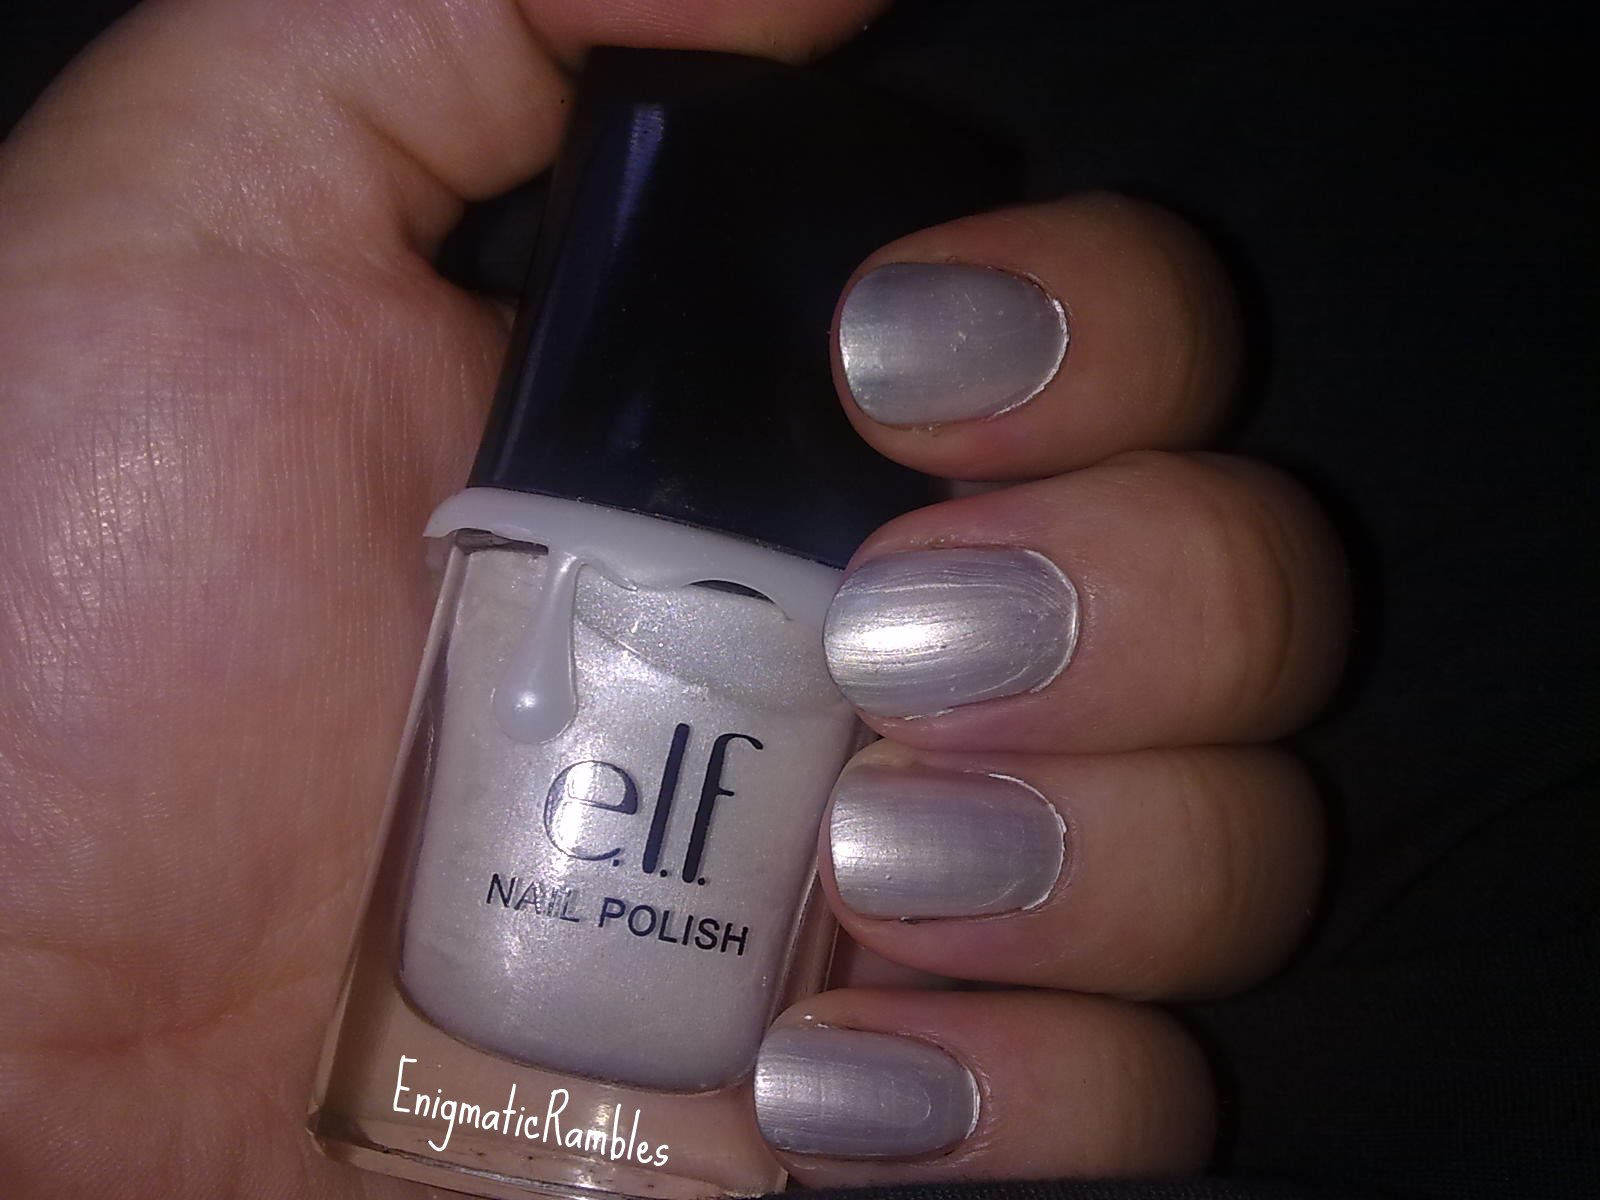 Awesome Burnt Orange Nail Polish Thin Best At Home Gel Nail Polish Kit Clean What Gets Nail Polish Off Nail Polish In Islam Youthful Gradation Nail Polish WhiteHow To Make Black Nail Polish Enigmatic Rambles: Review: ELF   Nail Polish   Pearl